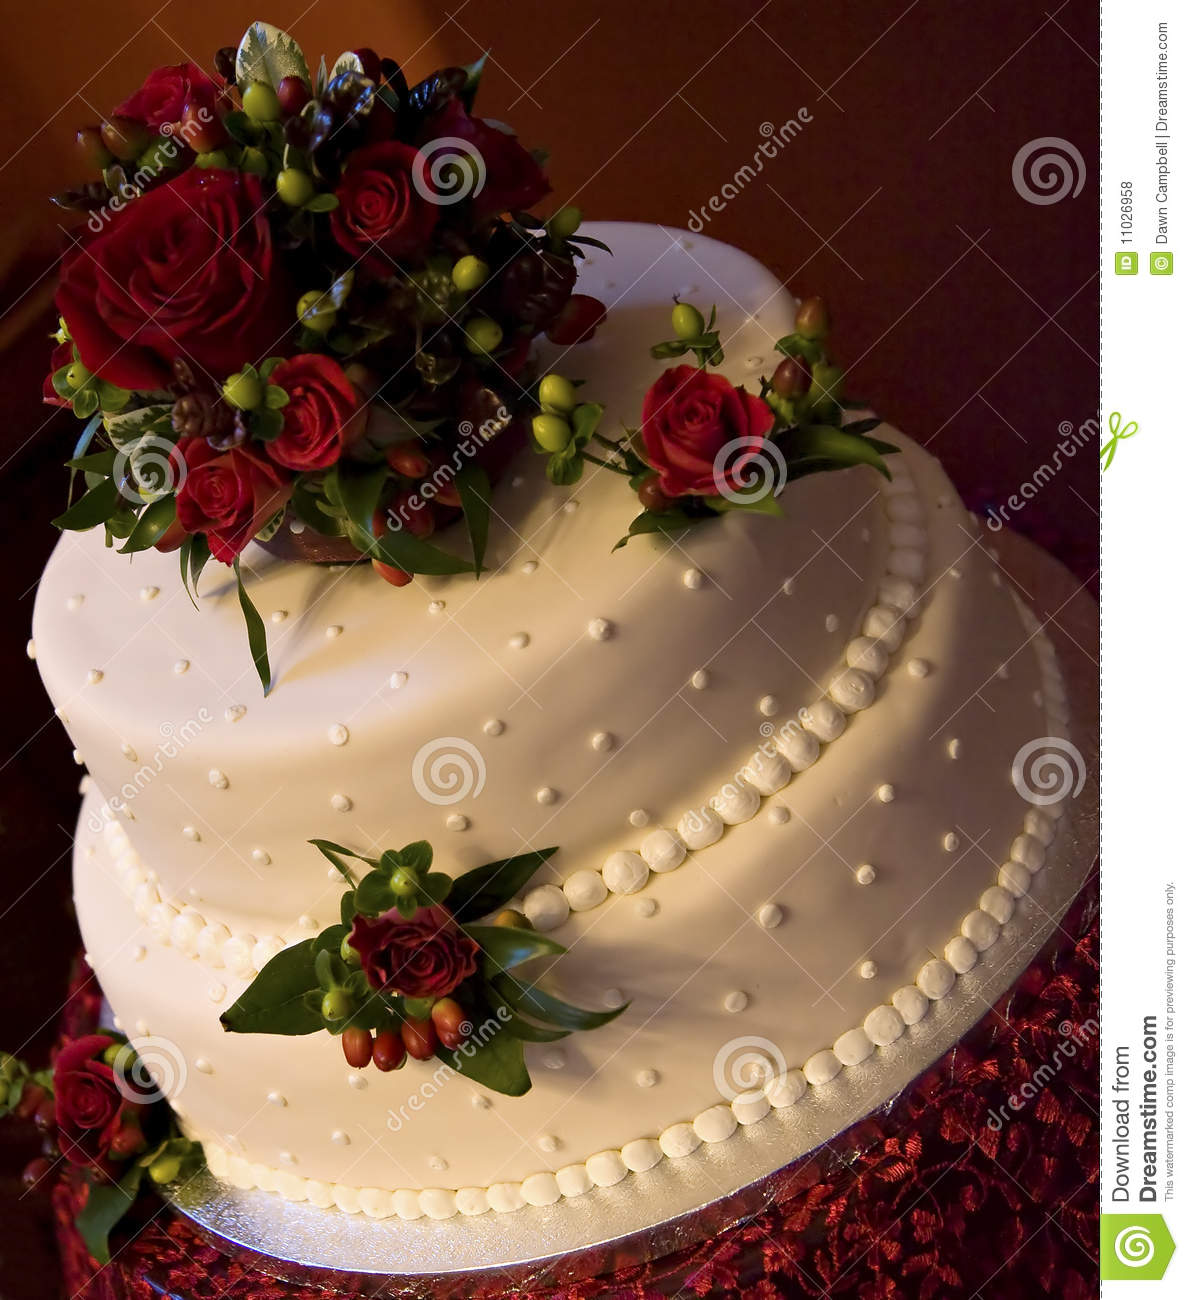 White Wedding Cake With Red Roses Royalty Free Stock